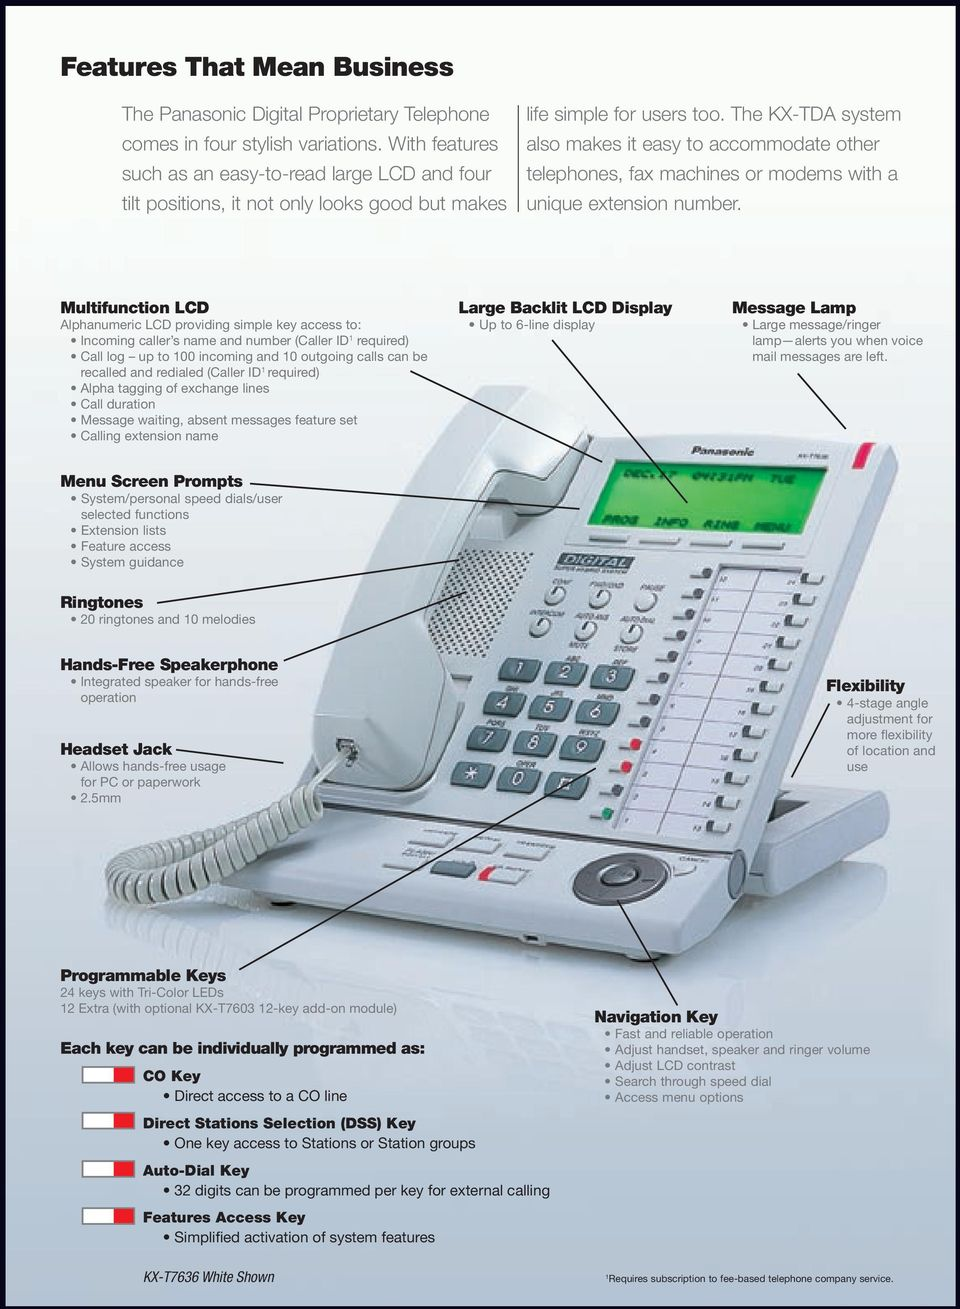 The KX-TDA system also makes it easy to accommodate other telephones, fax machines or modems with a unique extension number.